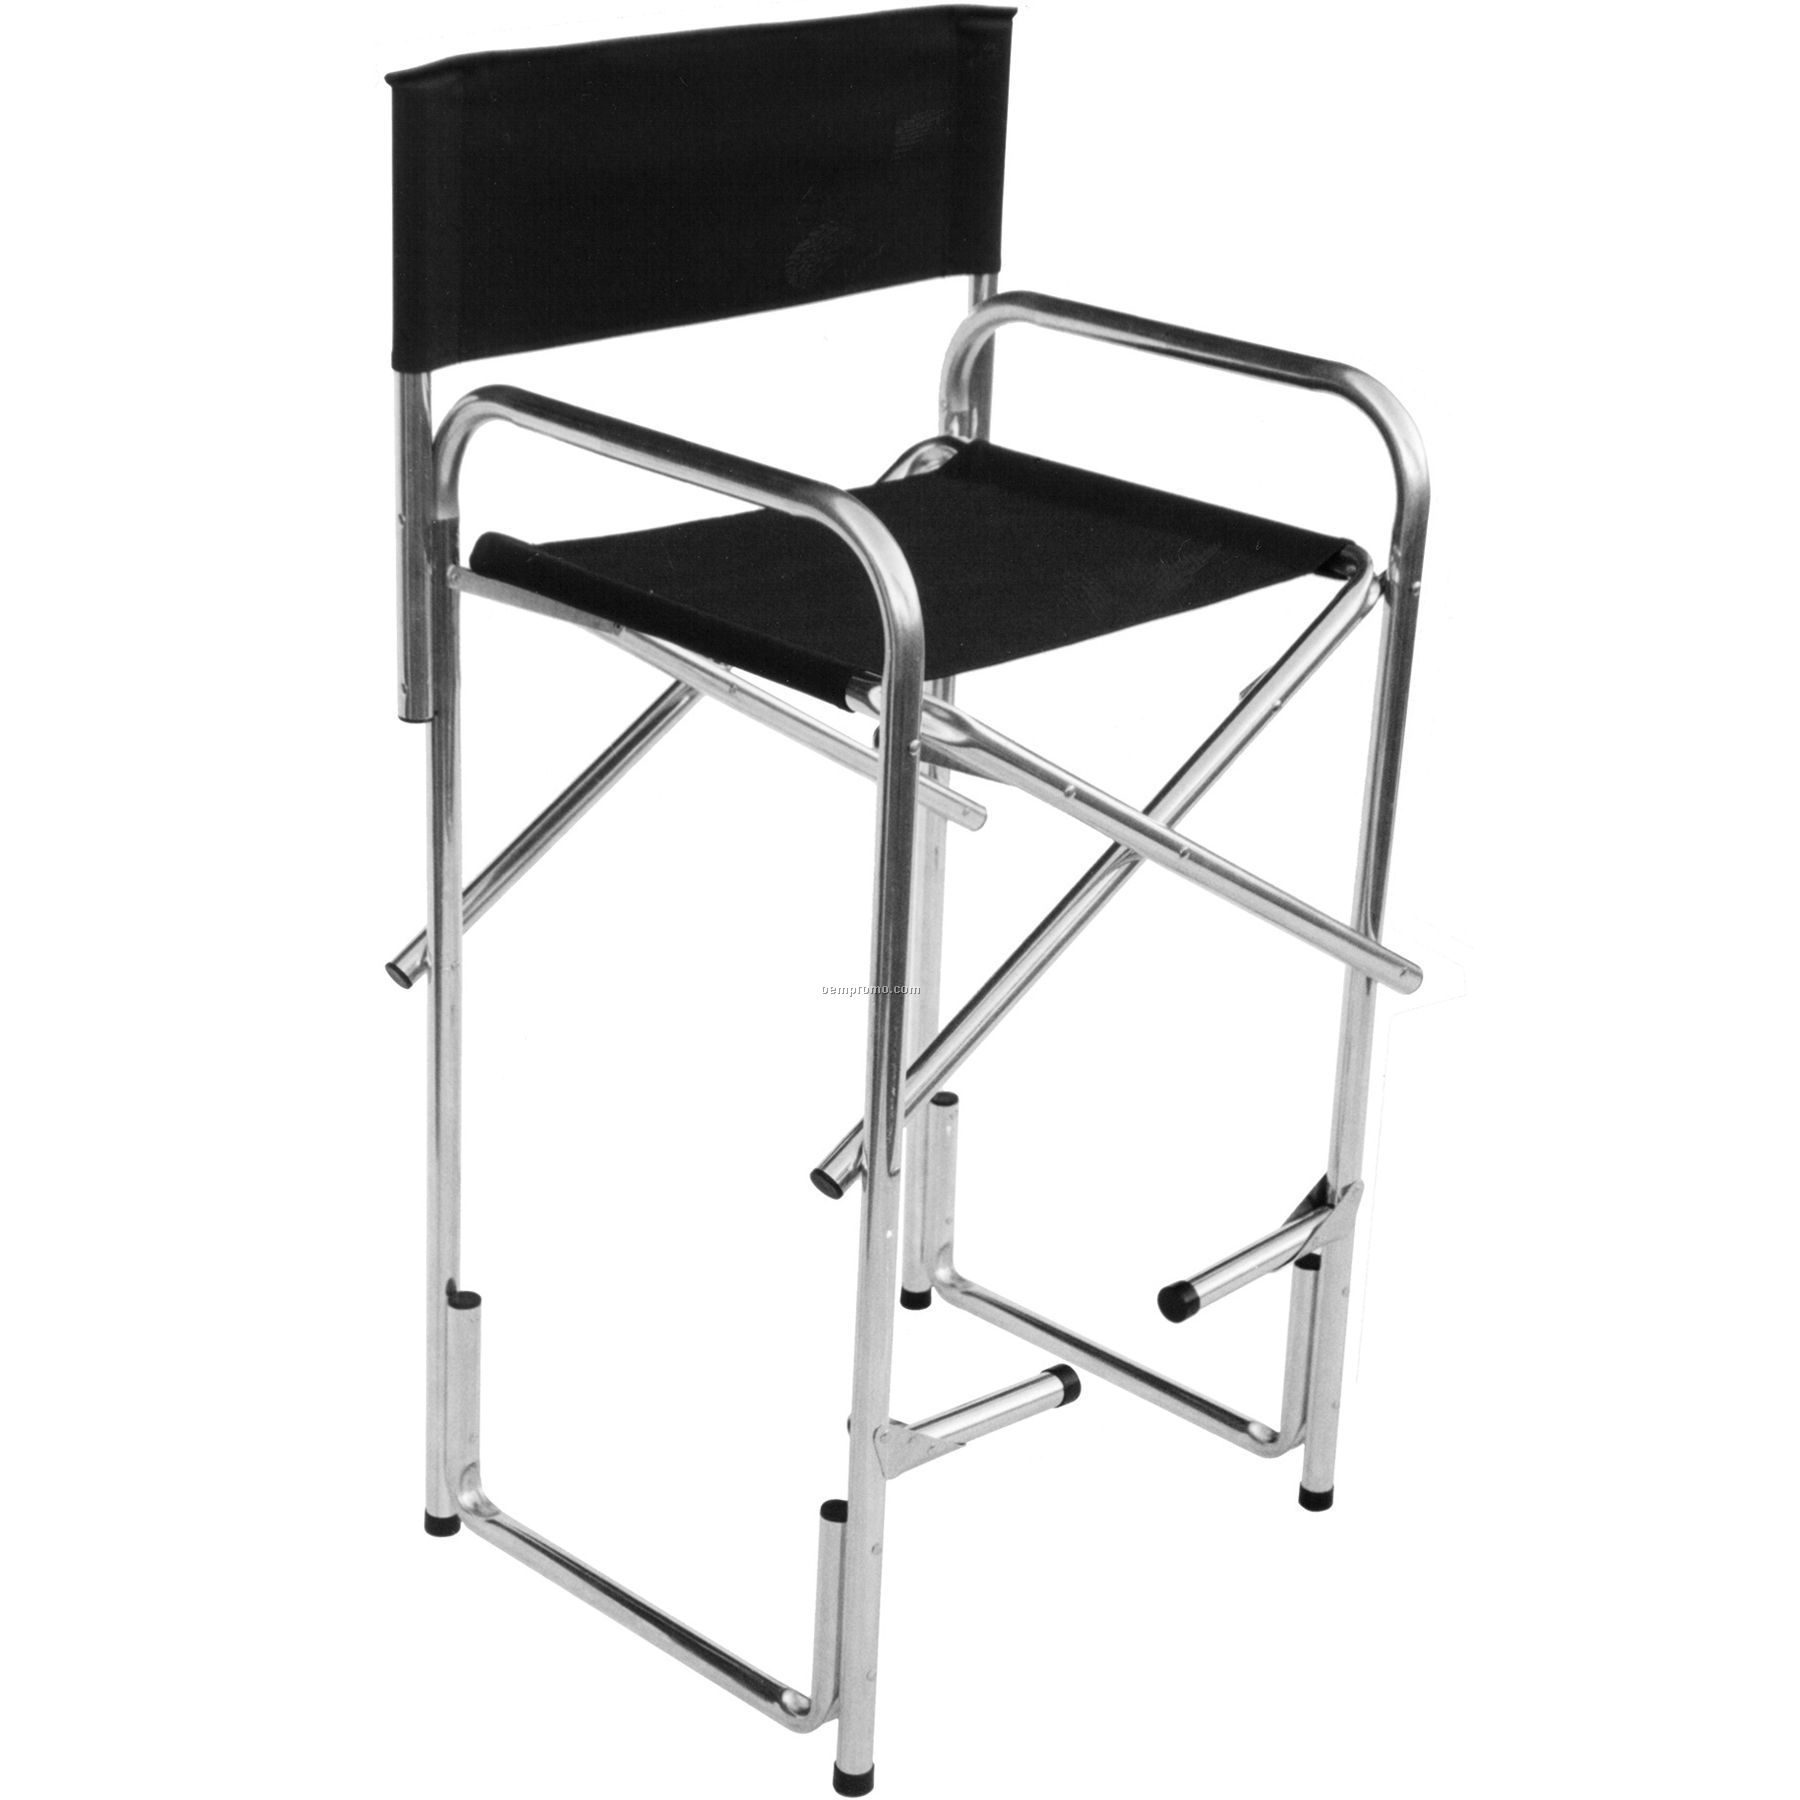 Imported Deluxe Folding High Back Aluminum Arm Chair W/375 Lb Weight Rating,China Wholesale ...